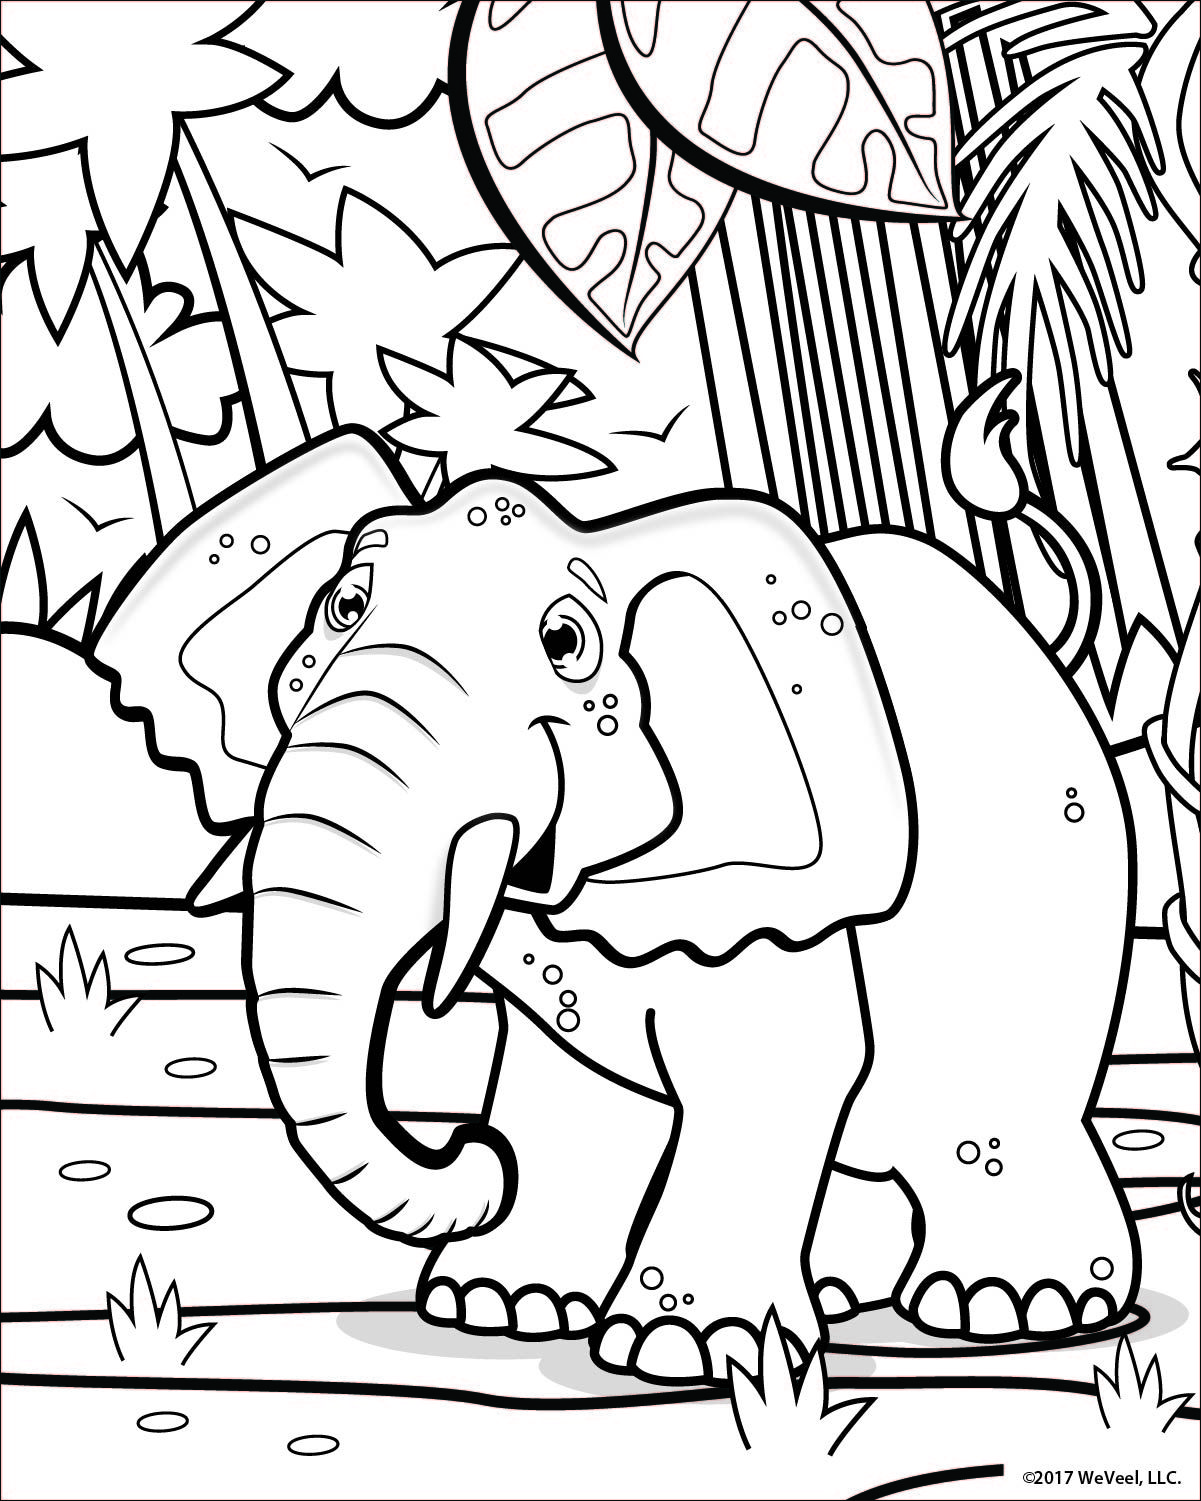 Coloring Pages Jungle Puppy Coloring Pages Jungle Coloring Pages Free Kids Coloring Pages